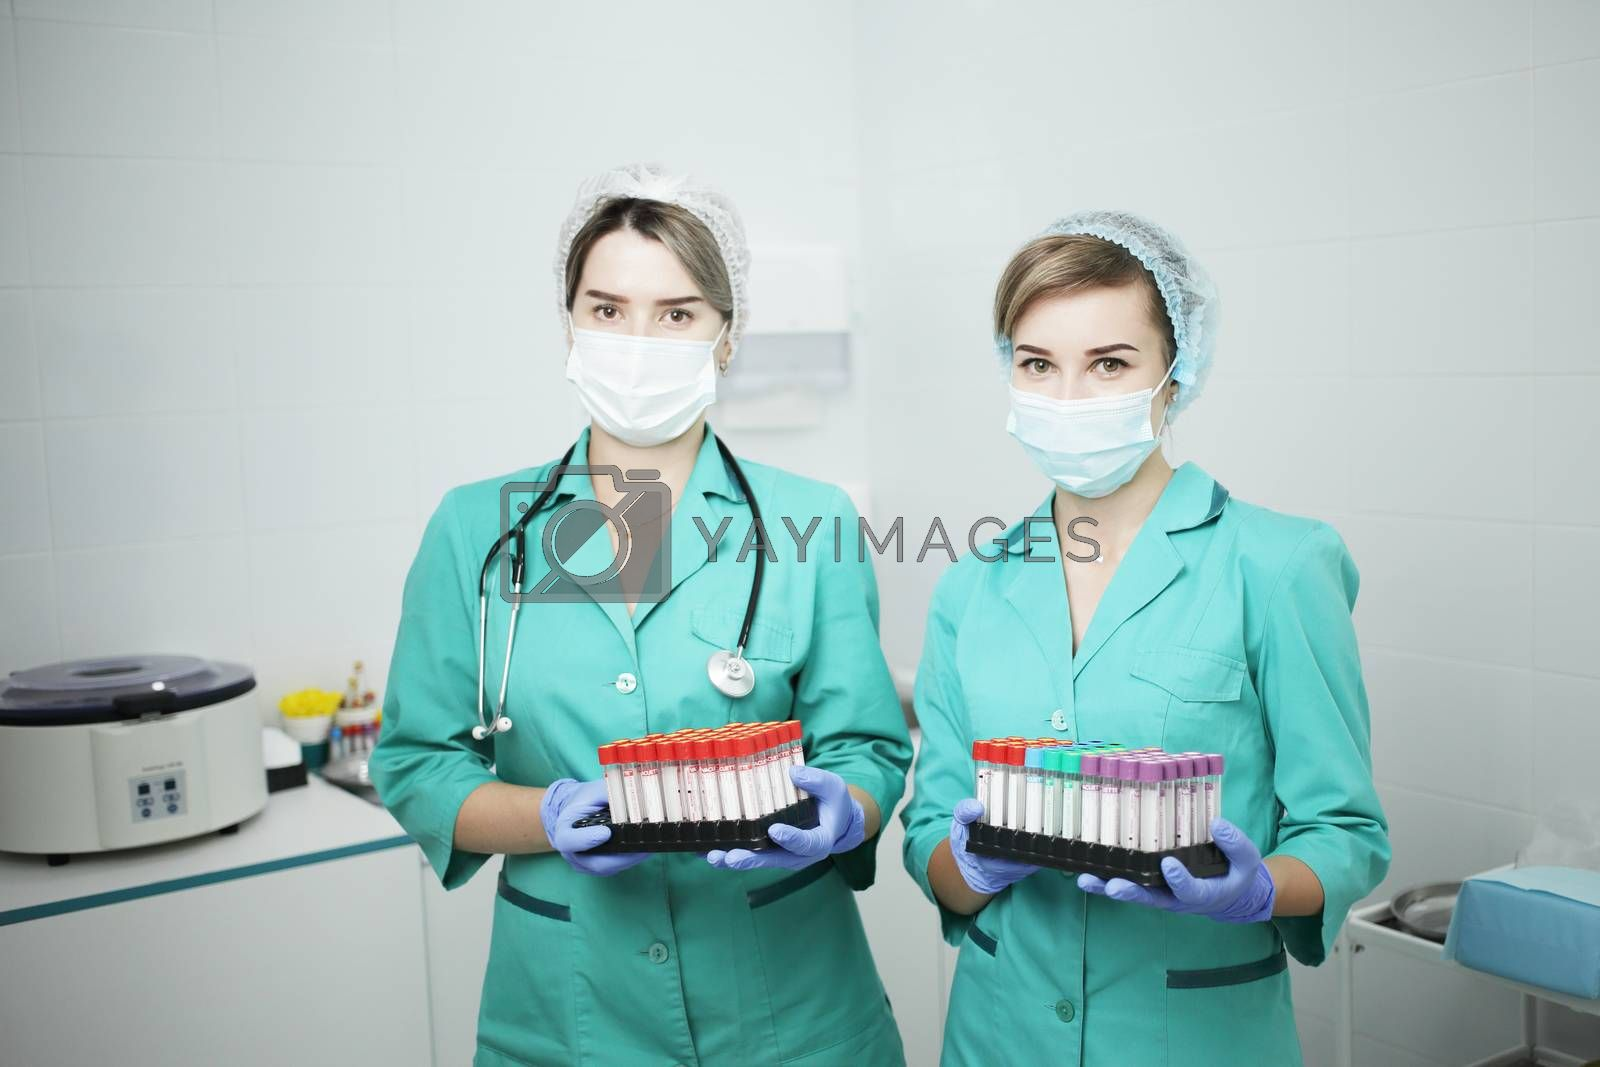 Two female nurses doctor in a hospital in a medical mask and medical clothes hold cones of a test tube for a blood test